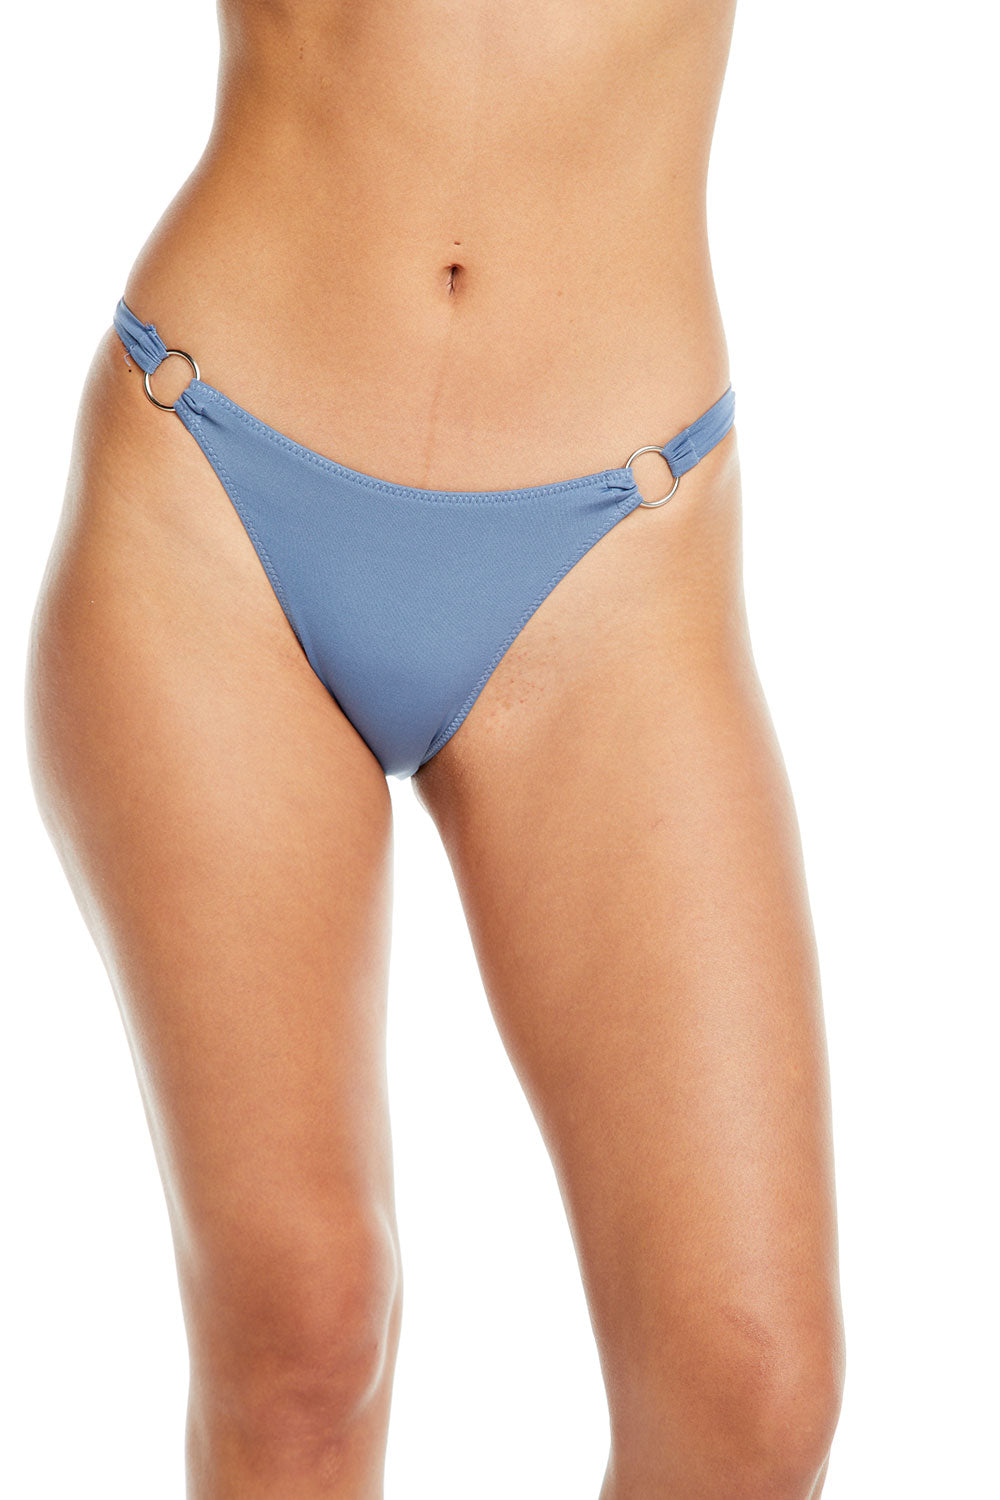 Swim Bikini Bottom, WOMENS, chaserbrand.com,chaser clothing,chaser apparel,chaser los angeles